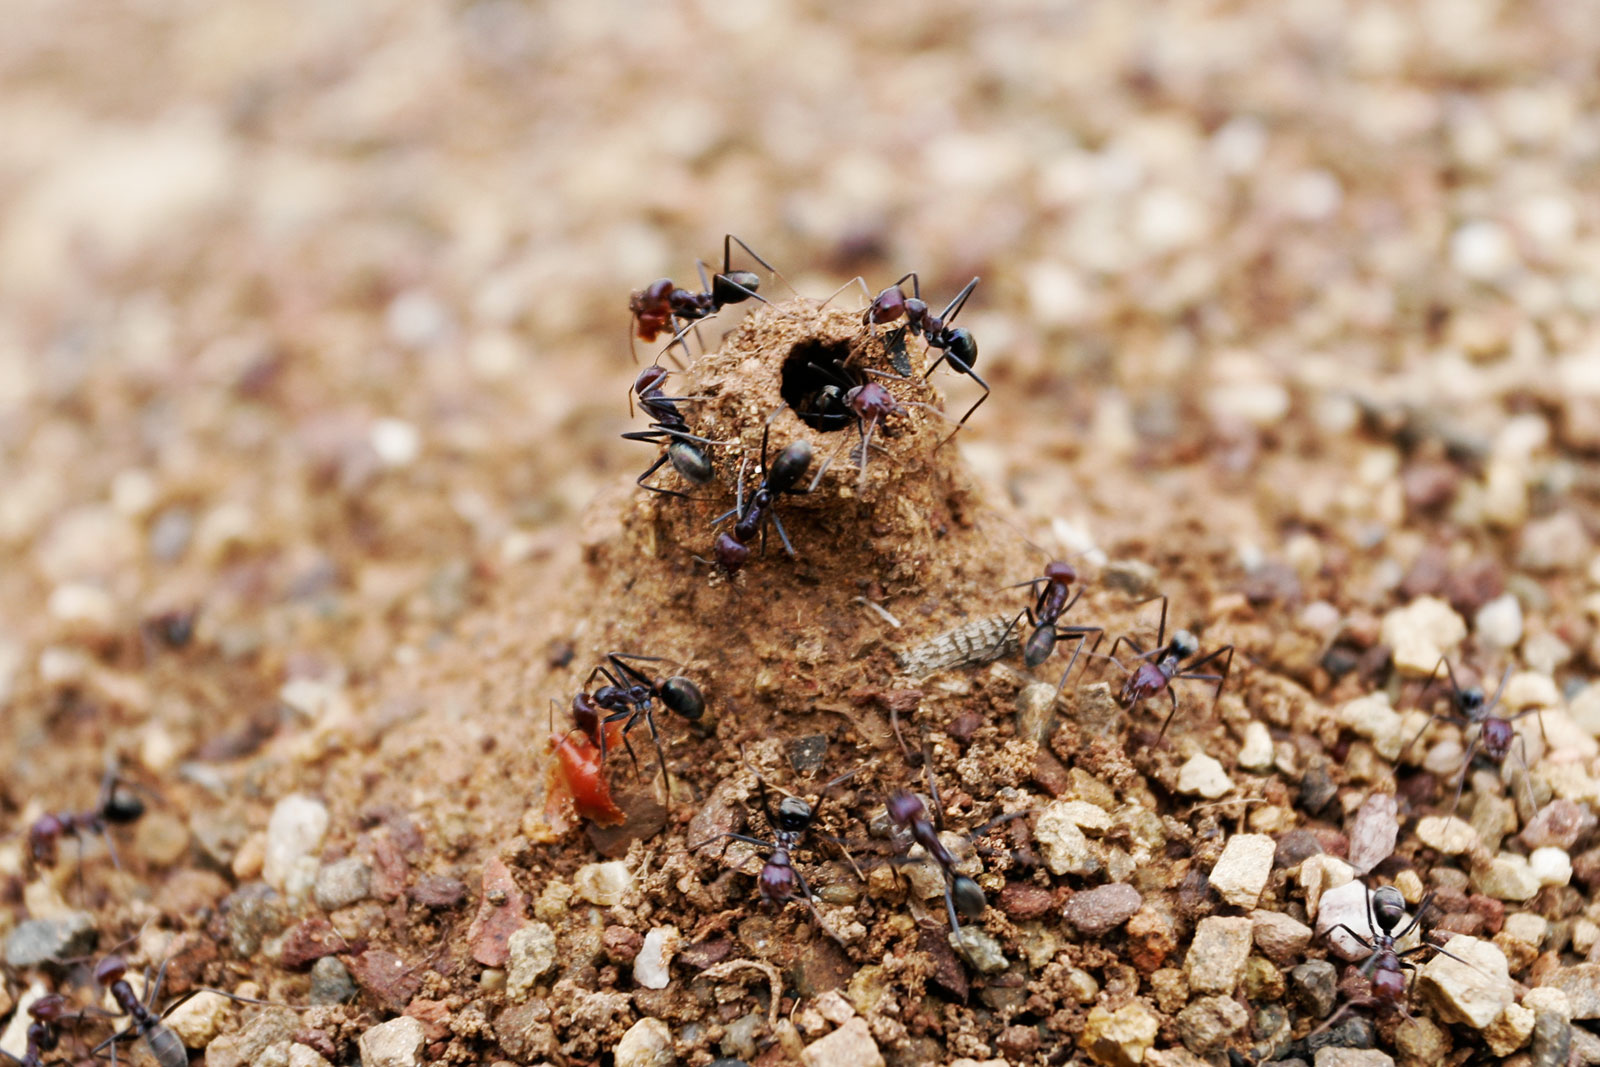 Ant mound holes prevent water from entering the nest during rain.